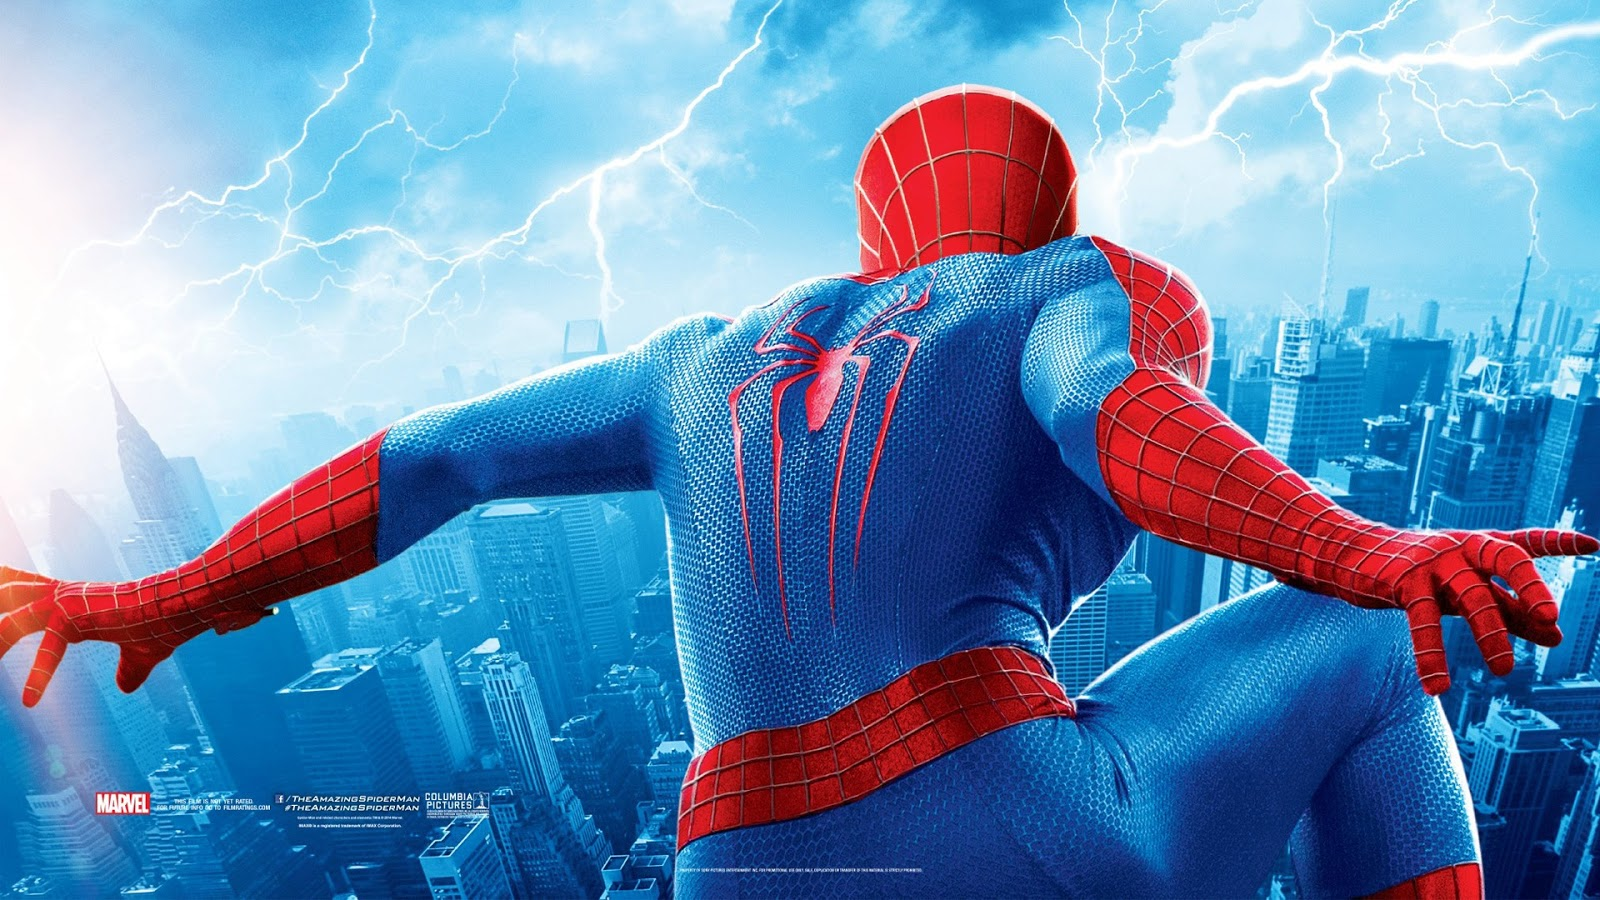 Spiderman Images Wallpaper Download